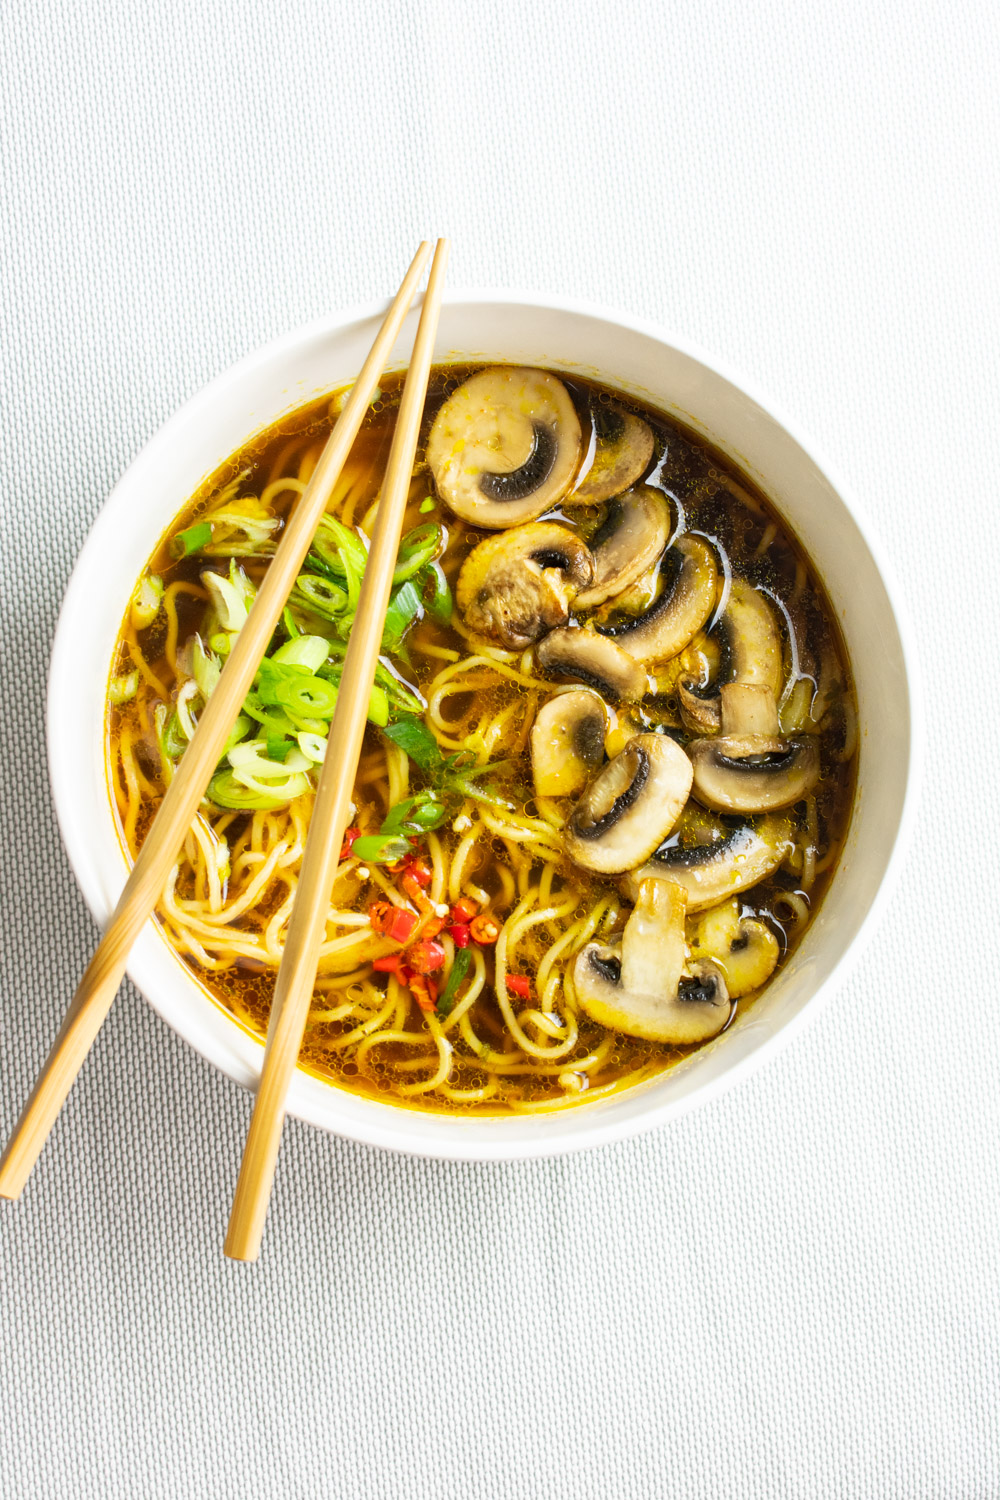 Mushroom noodle soup cooked in vegetable broth. This is an easy ramen recipe that is perfect for a winter evening.